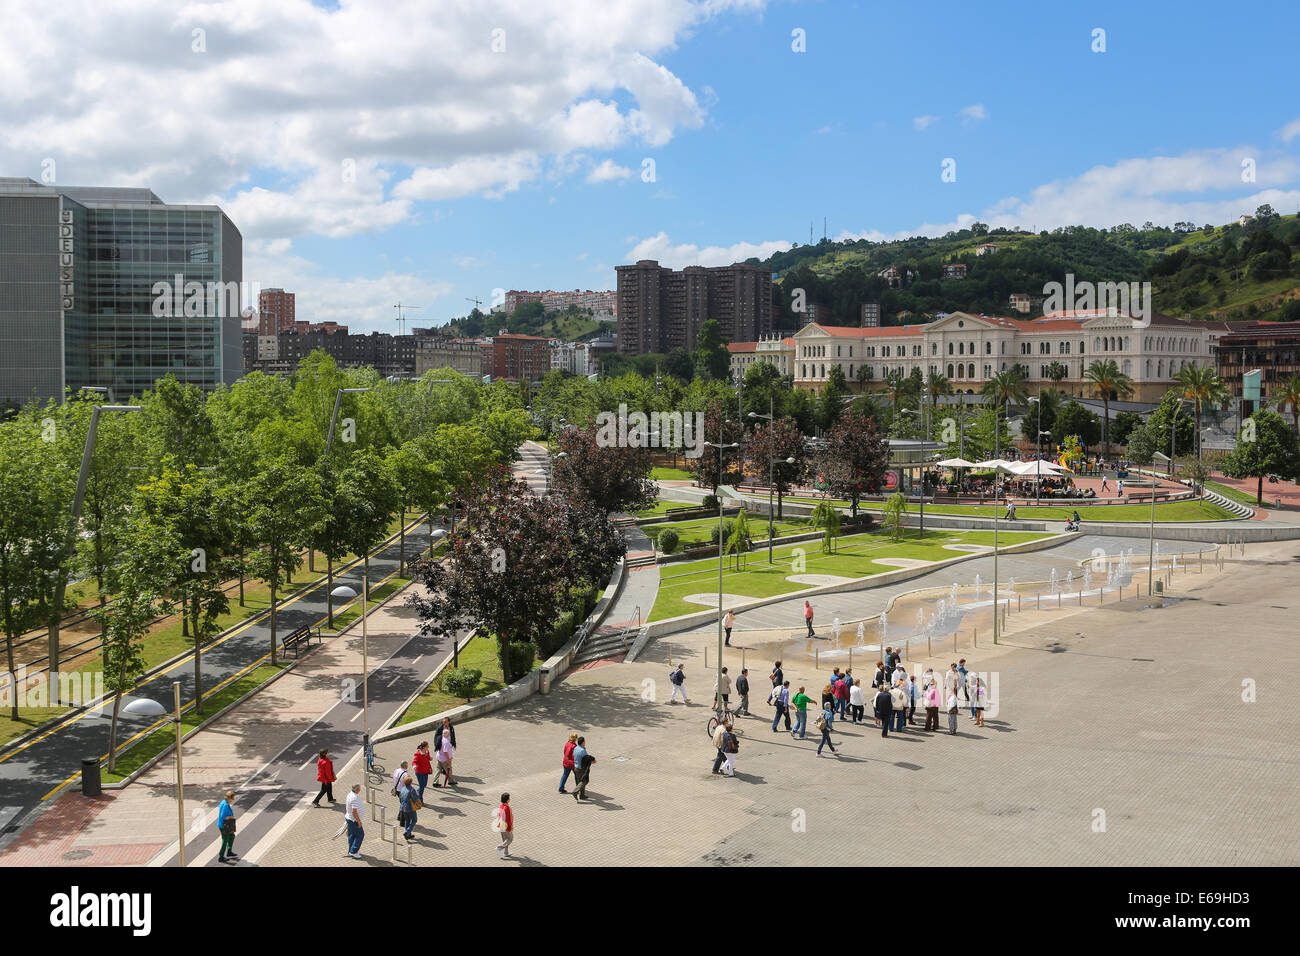 BILBAO, SPAIN - JULY 10, 2014: Unidentified people in the center of Bilbao, Basque country, Spain. - Stock Image